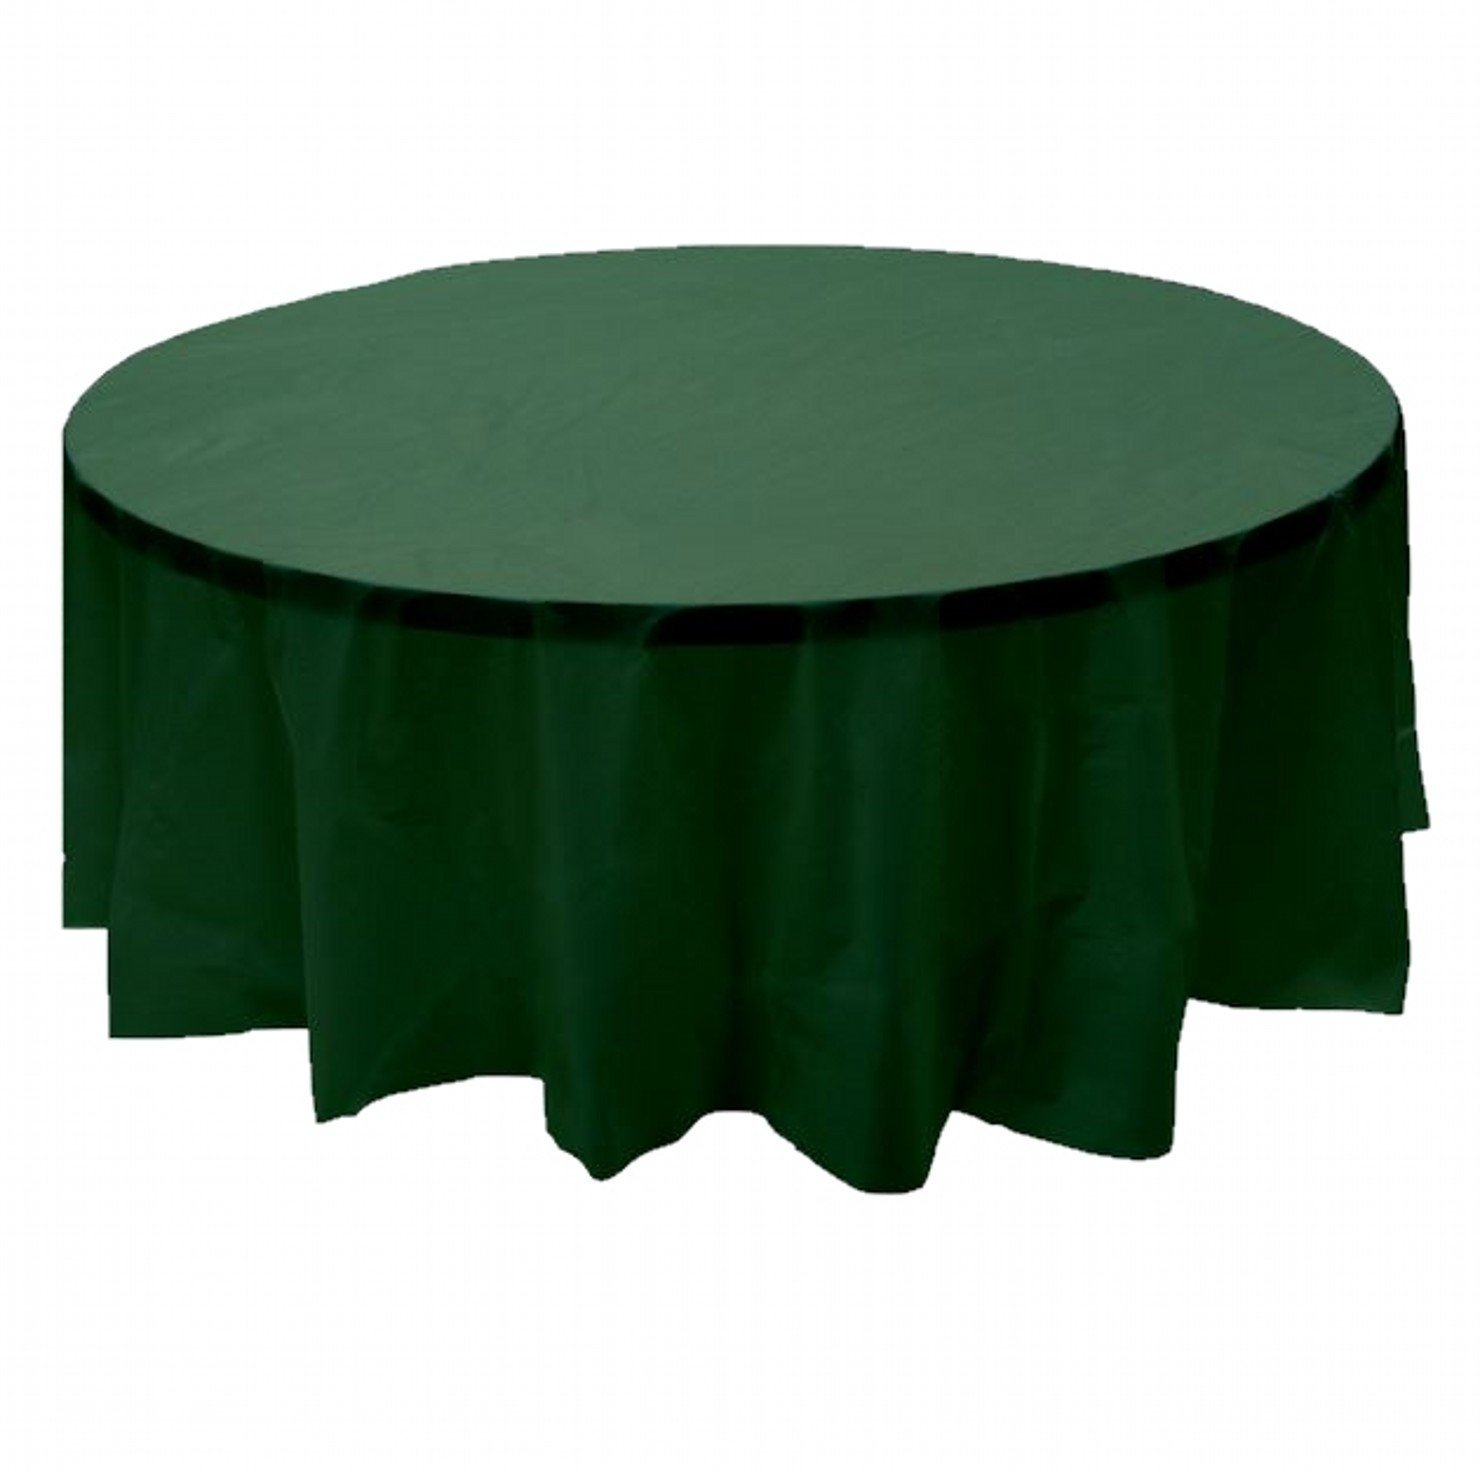 "2 Plastic Round Tablecloths 84"" Diameter Table Cover - Hunter Green"